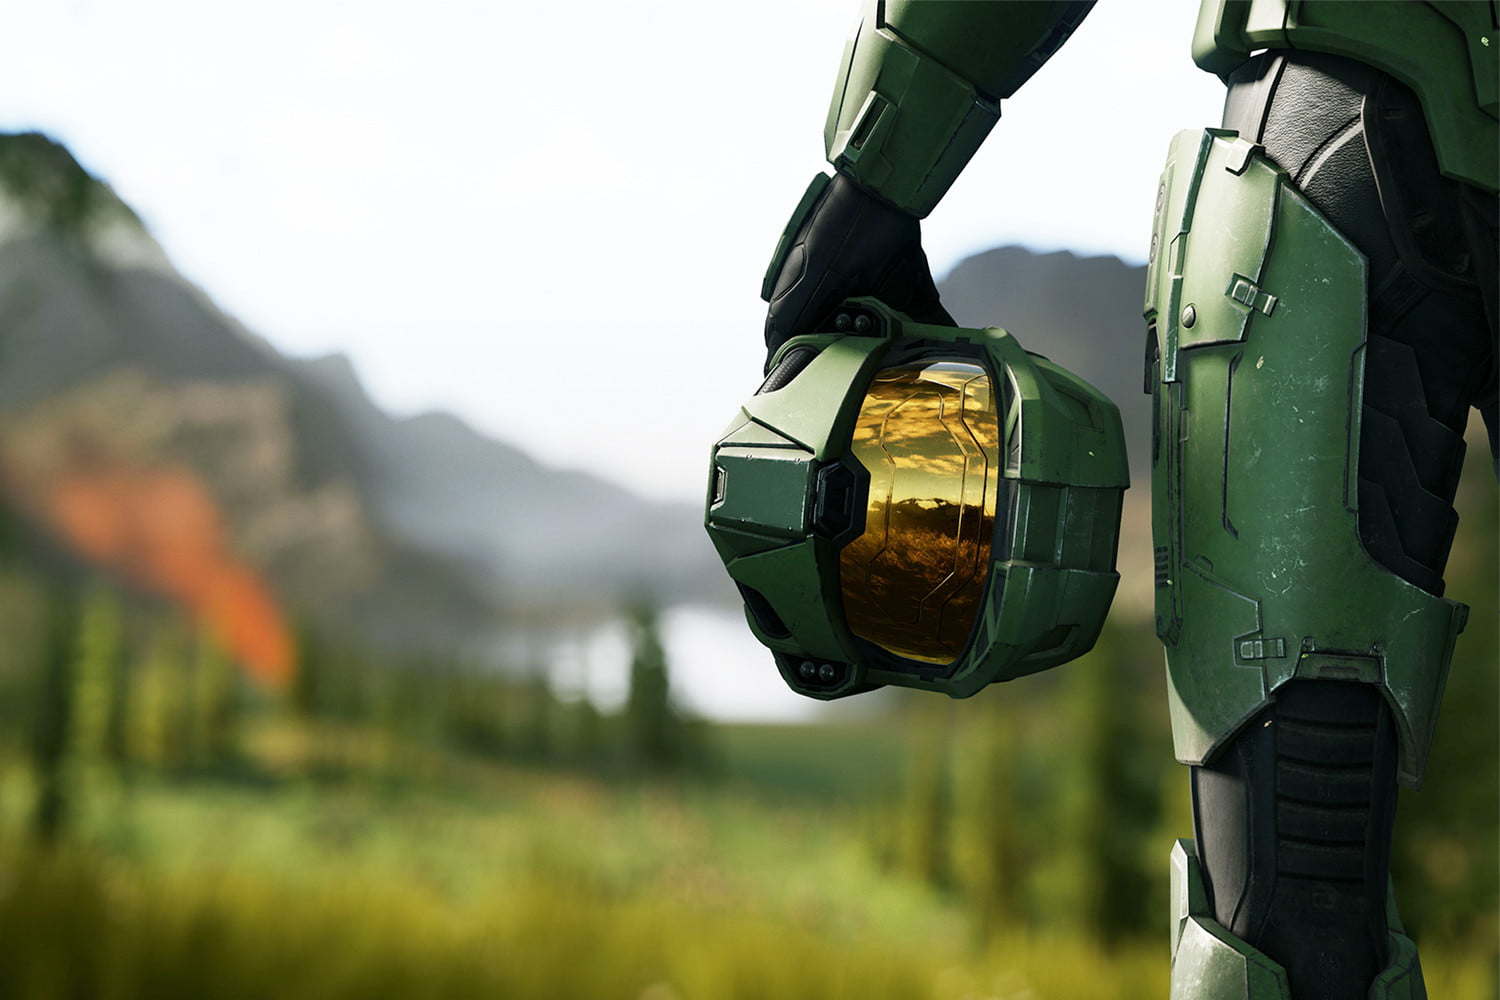 Halo Infinite 343 Industries Battle Royale